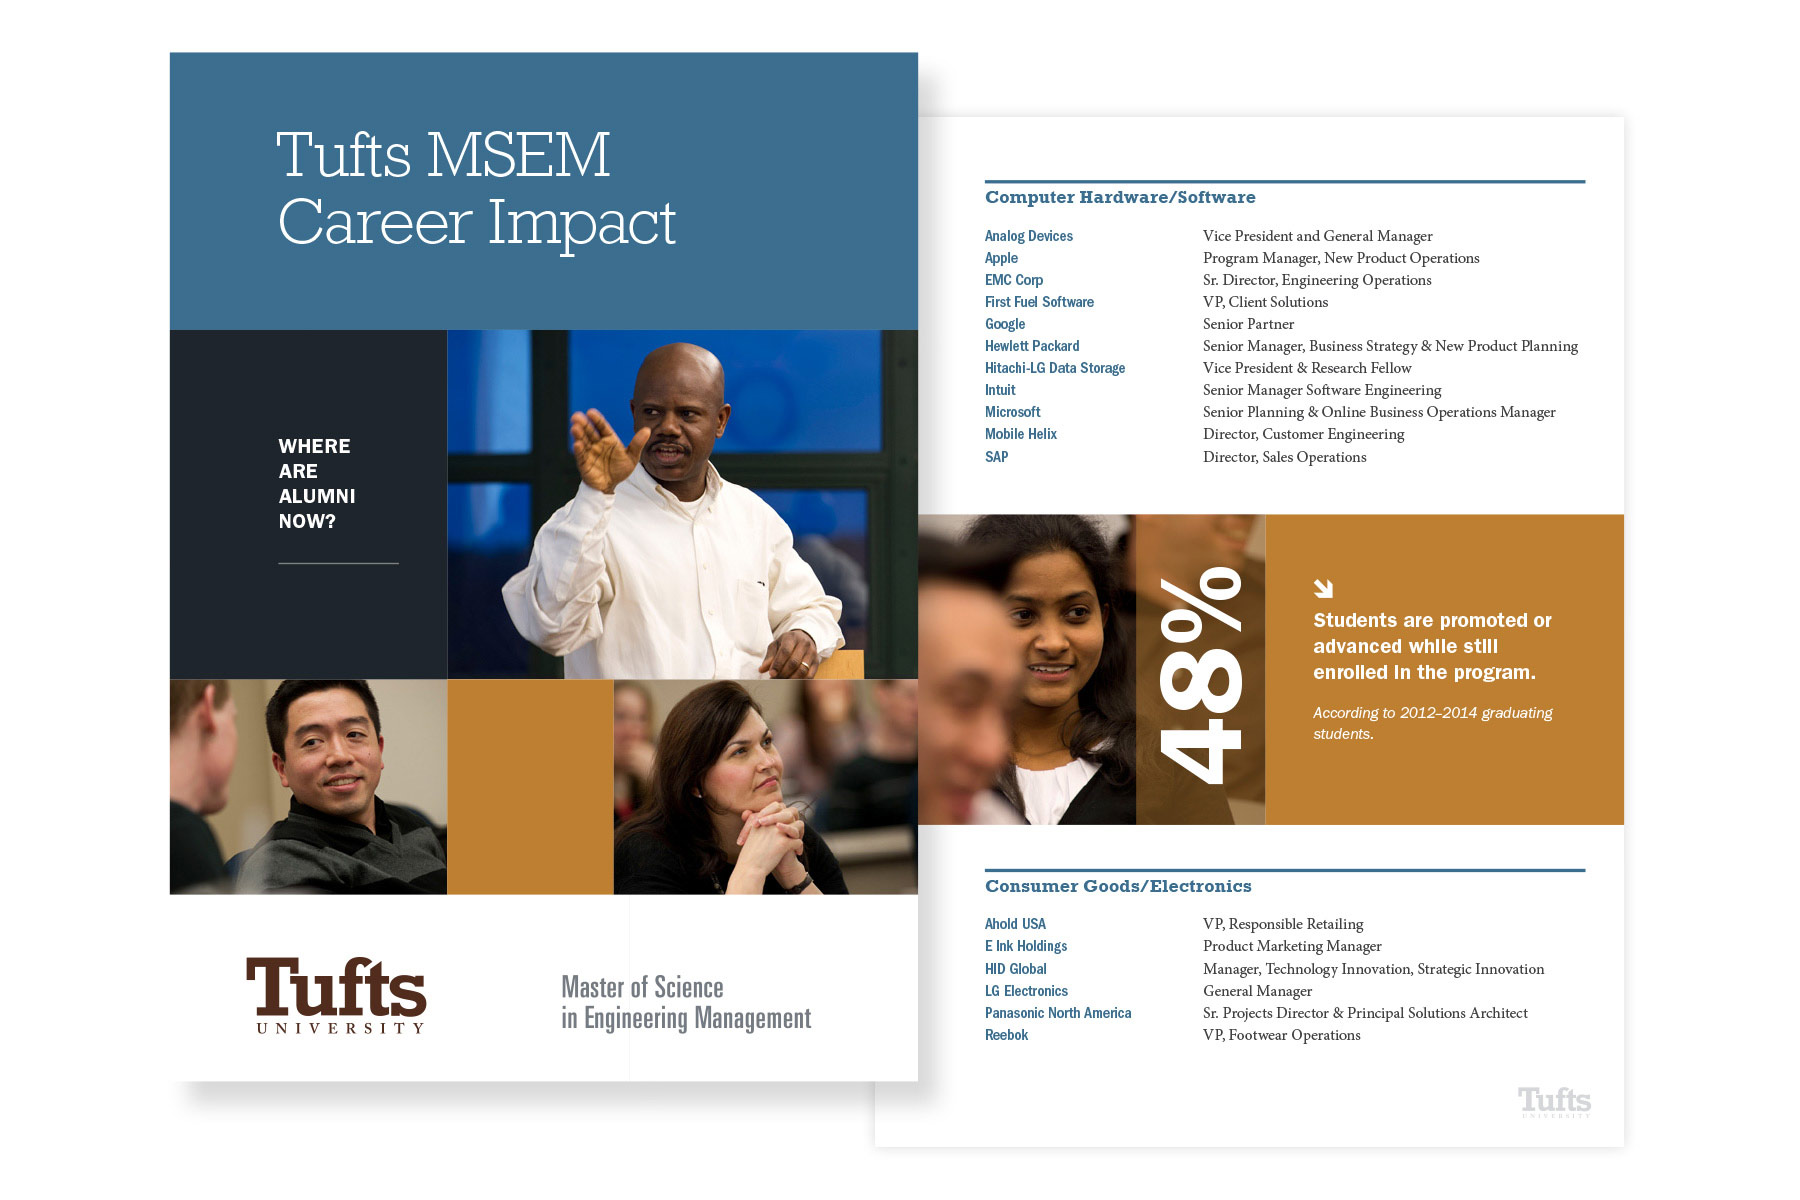 Tufts University Tufts Career Impact brochure spread